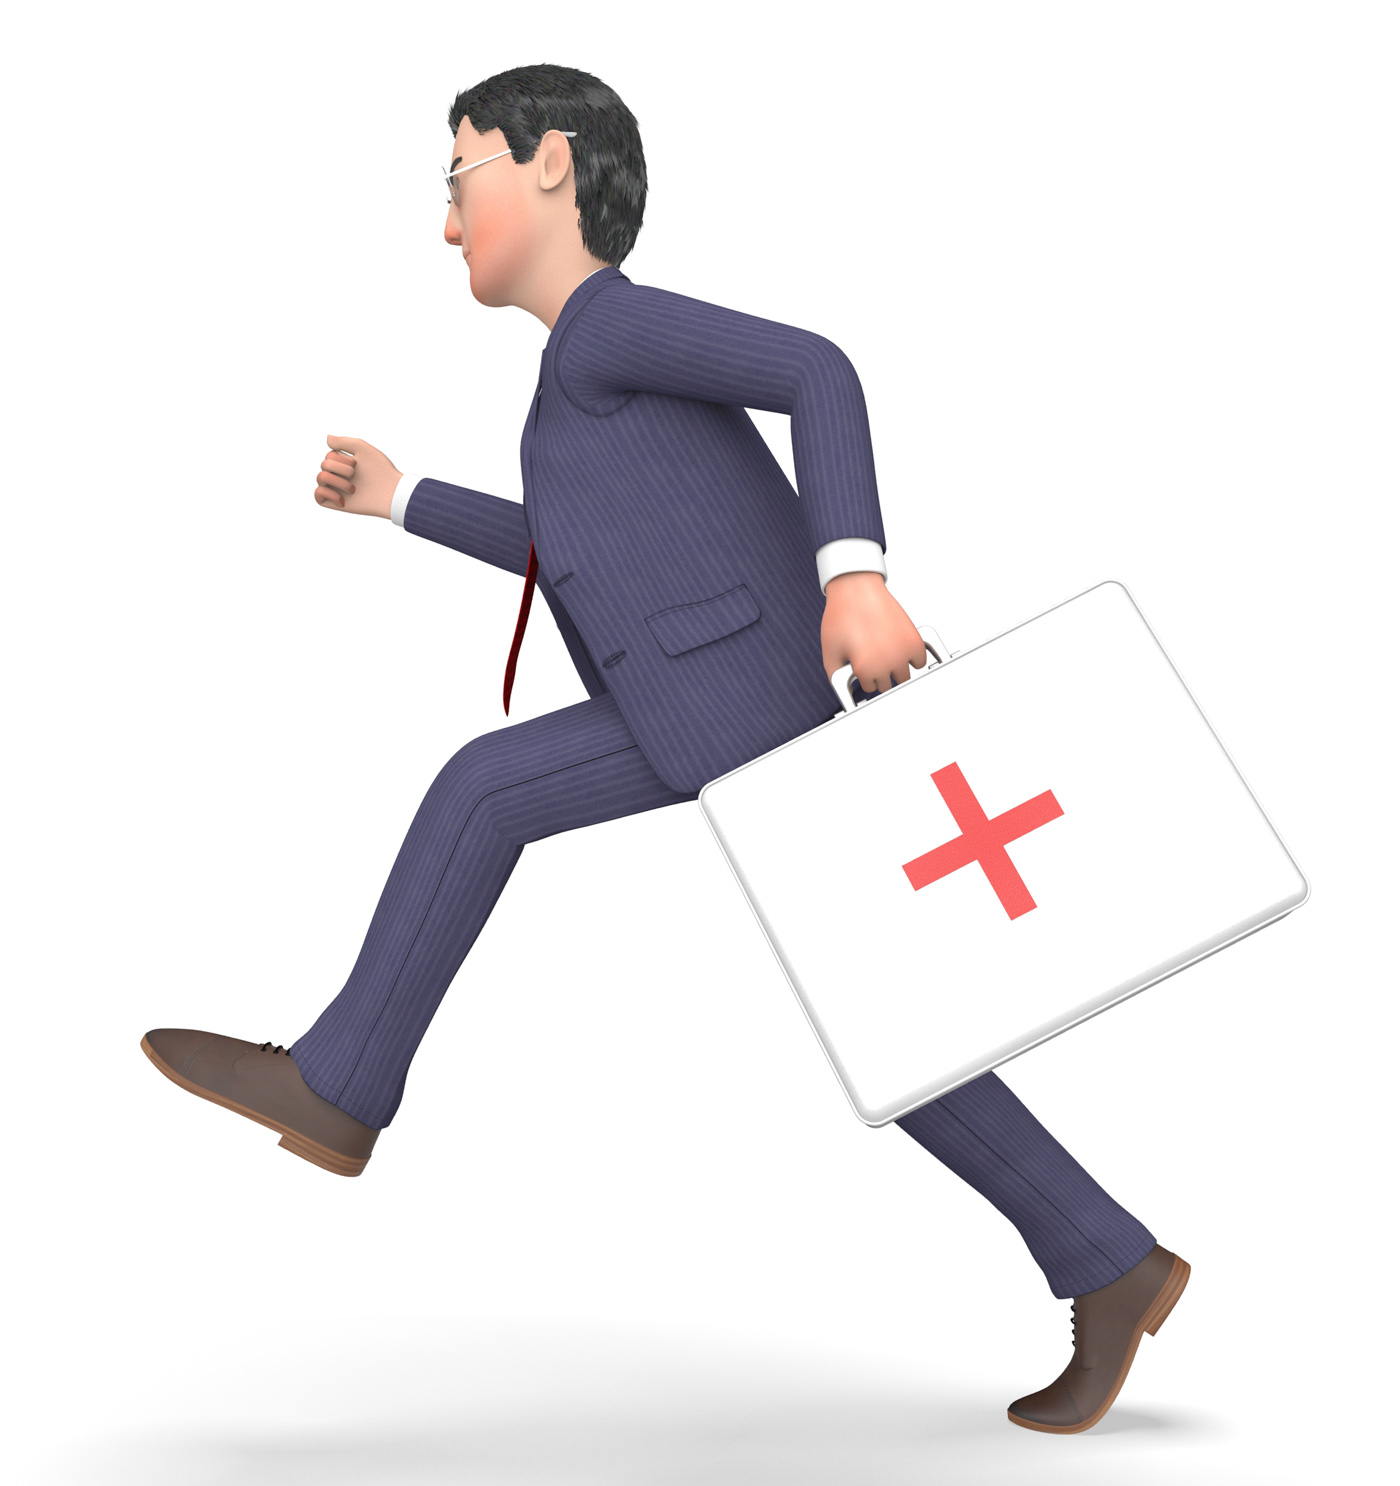 First Aid Indicates General Practitioner And Accident 3d Rendering, 3drendering, Help, Injury, Man, HQ Photo